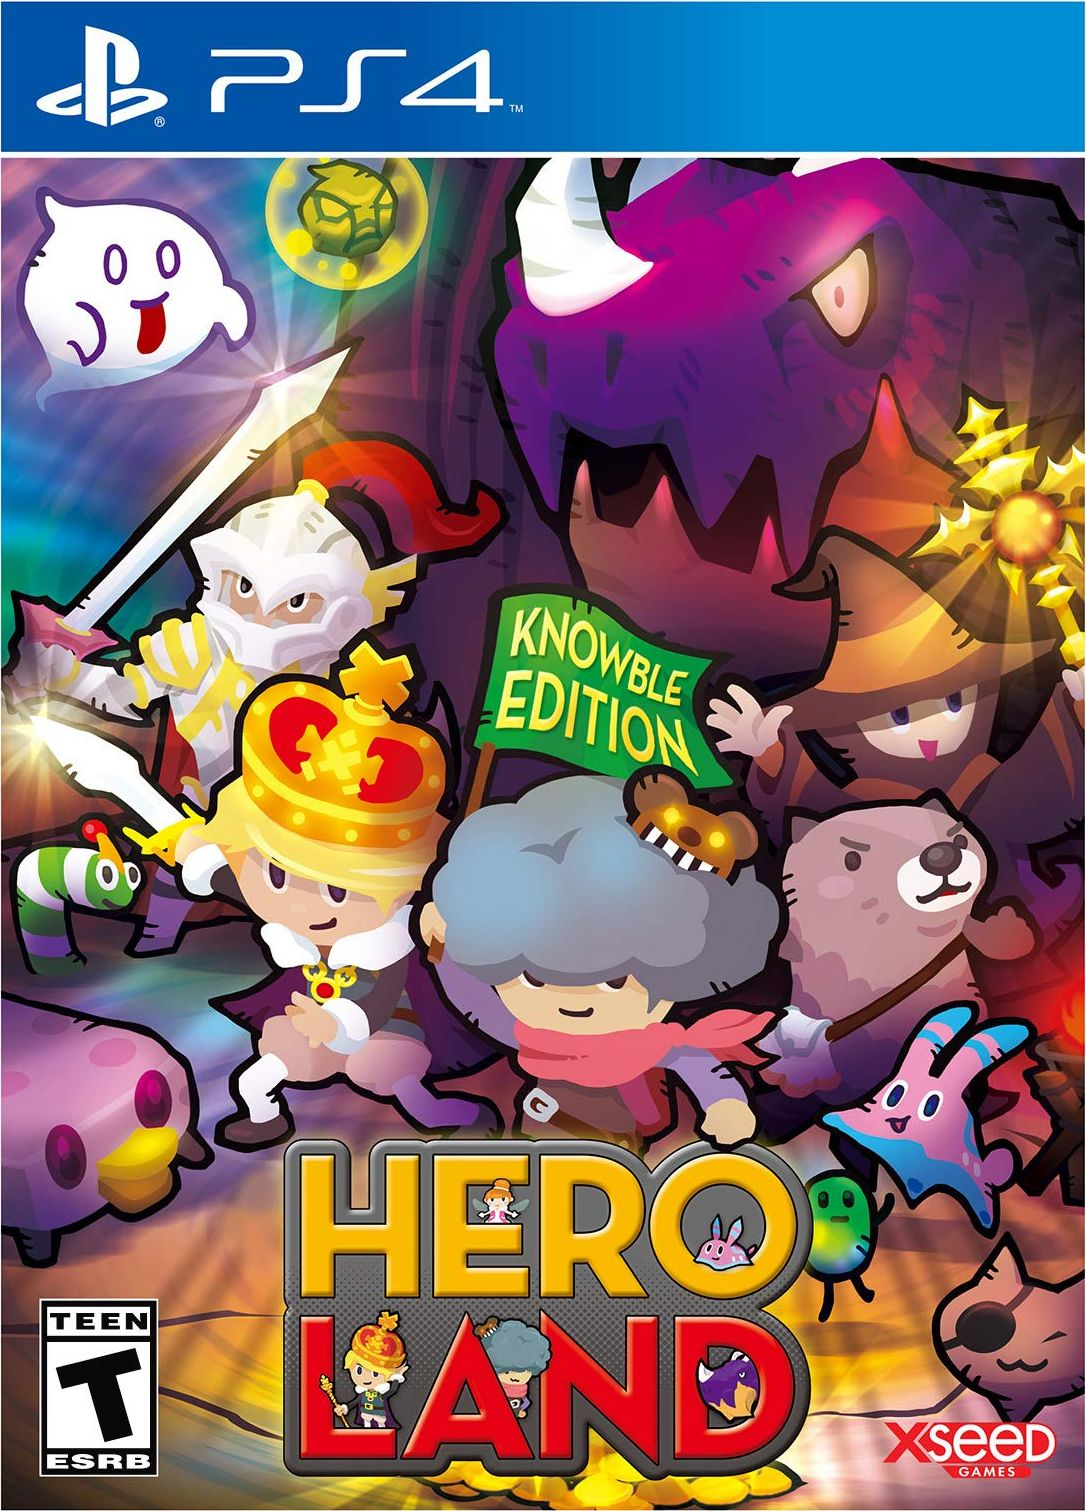 Hero Land Knowble Edition